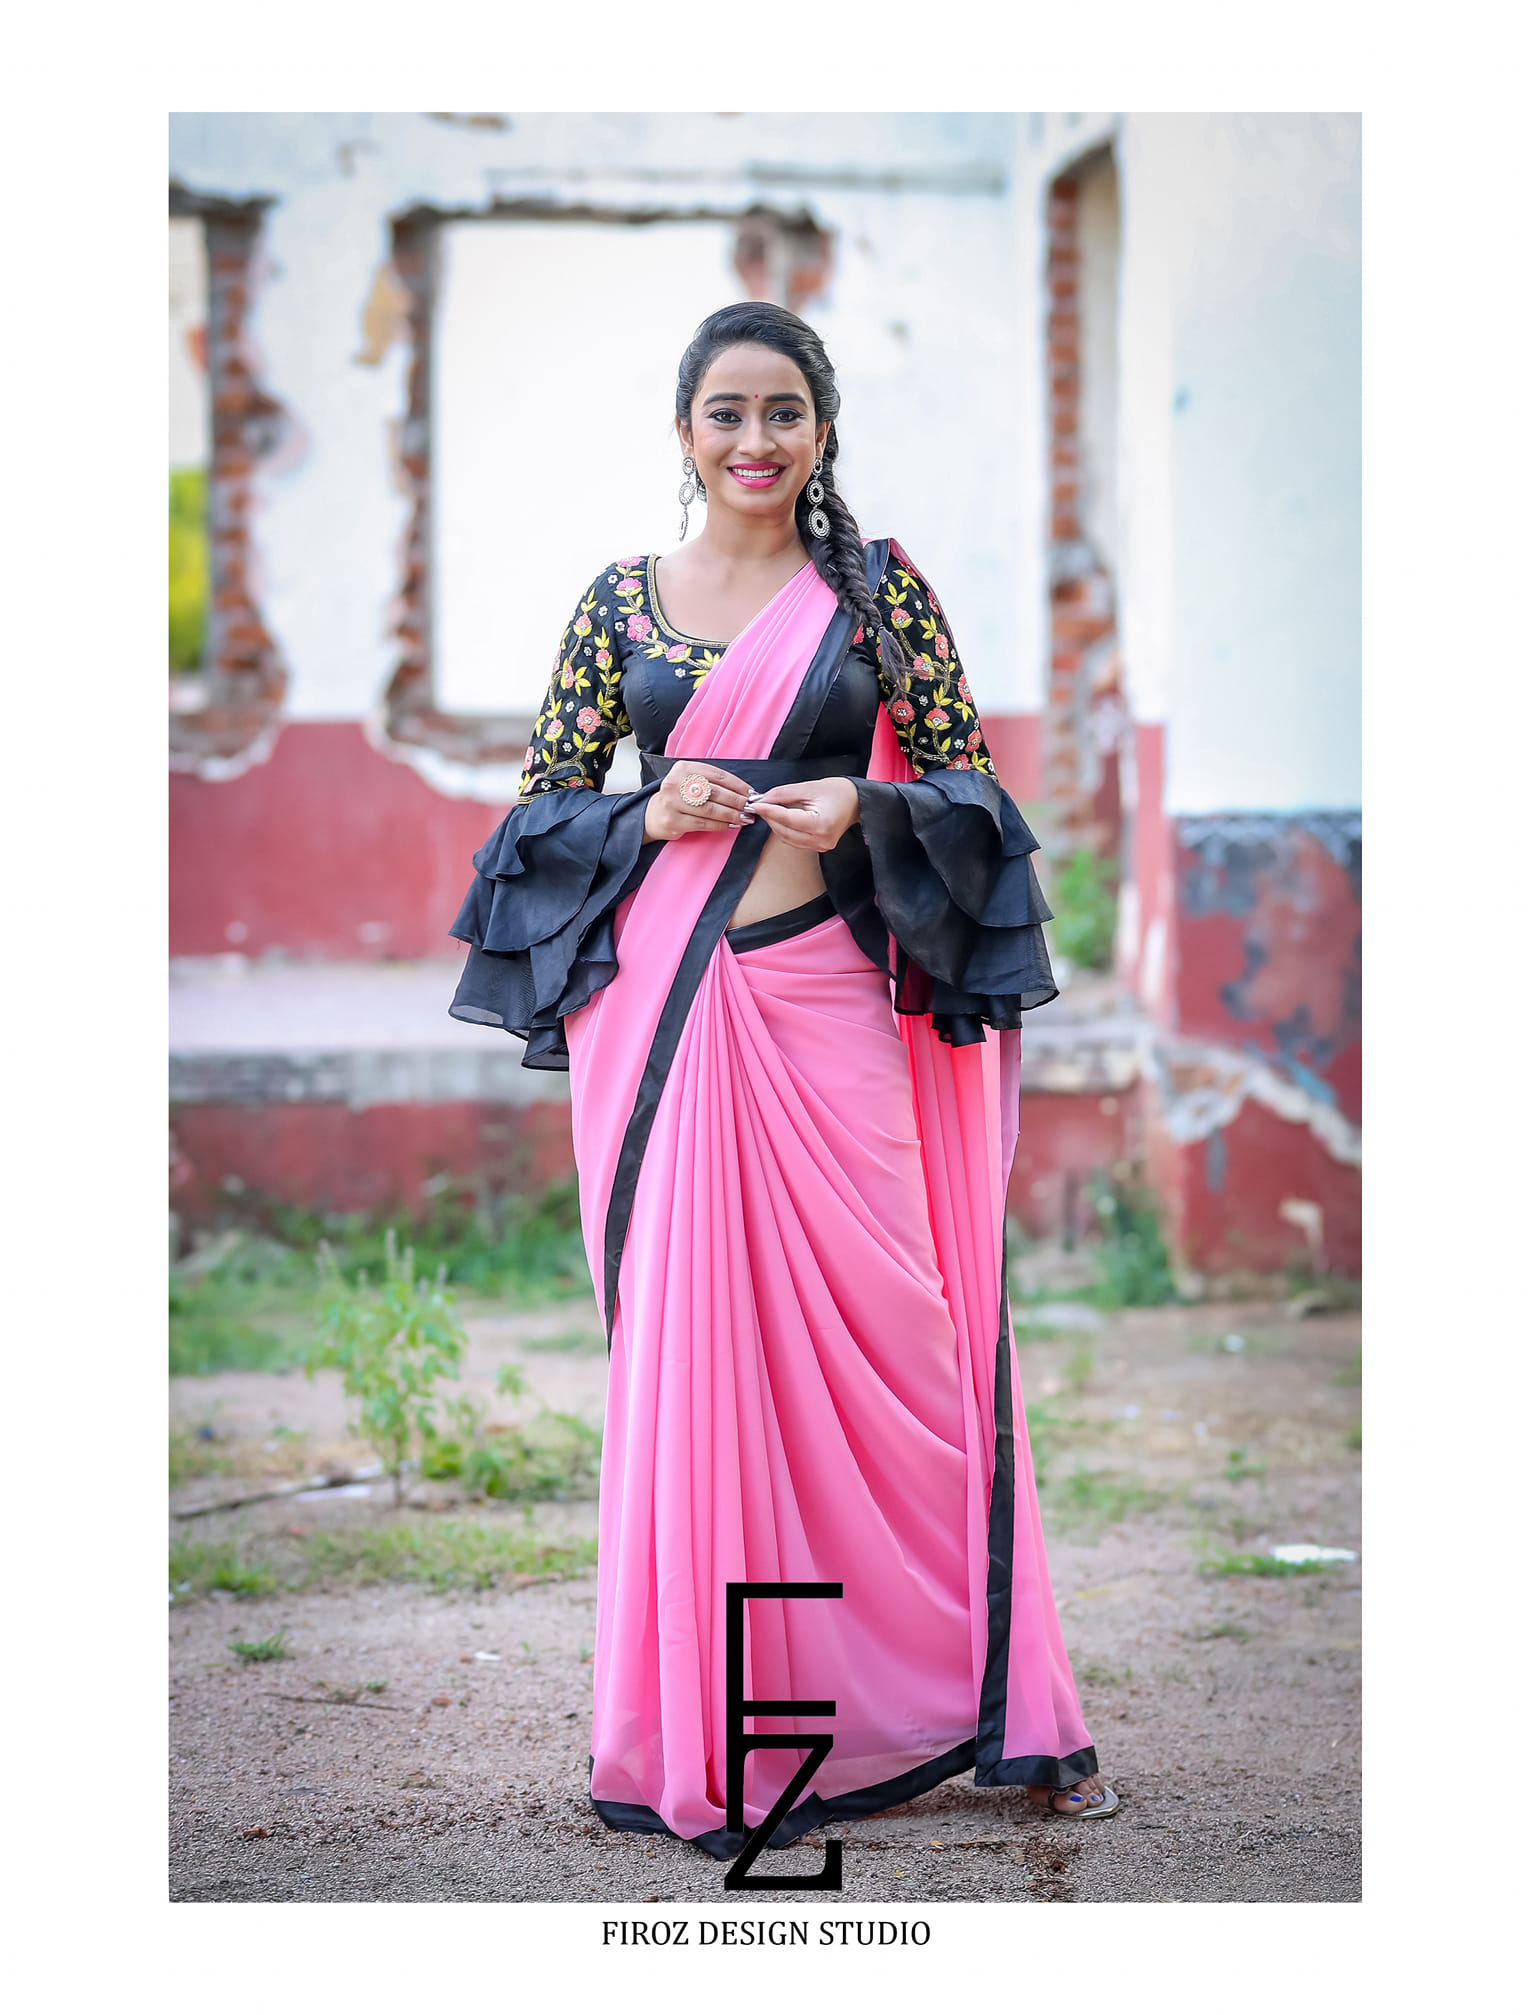 Beautiful and Charming Vindhya Vishaka in Firoz Design Studio Outfit. Stunning Vindya Vishaka in pink color saree and black blouse. Blouse with hand embroidery work and bell ruffle sleeves.  2021-02-21